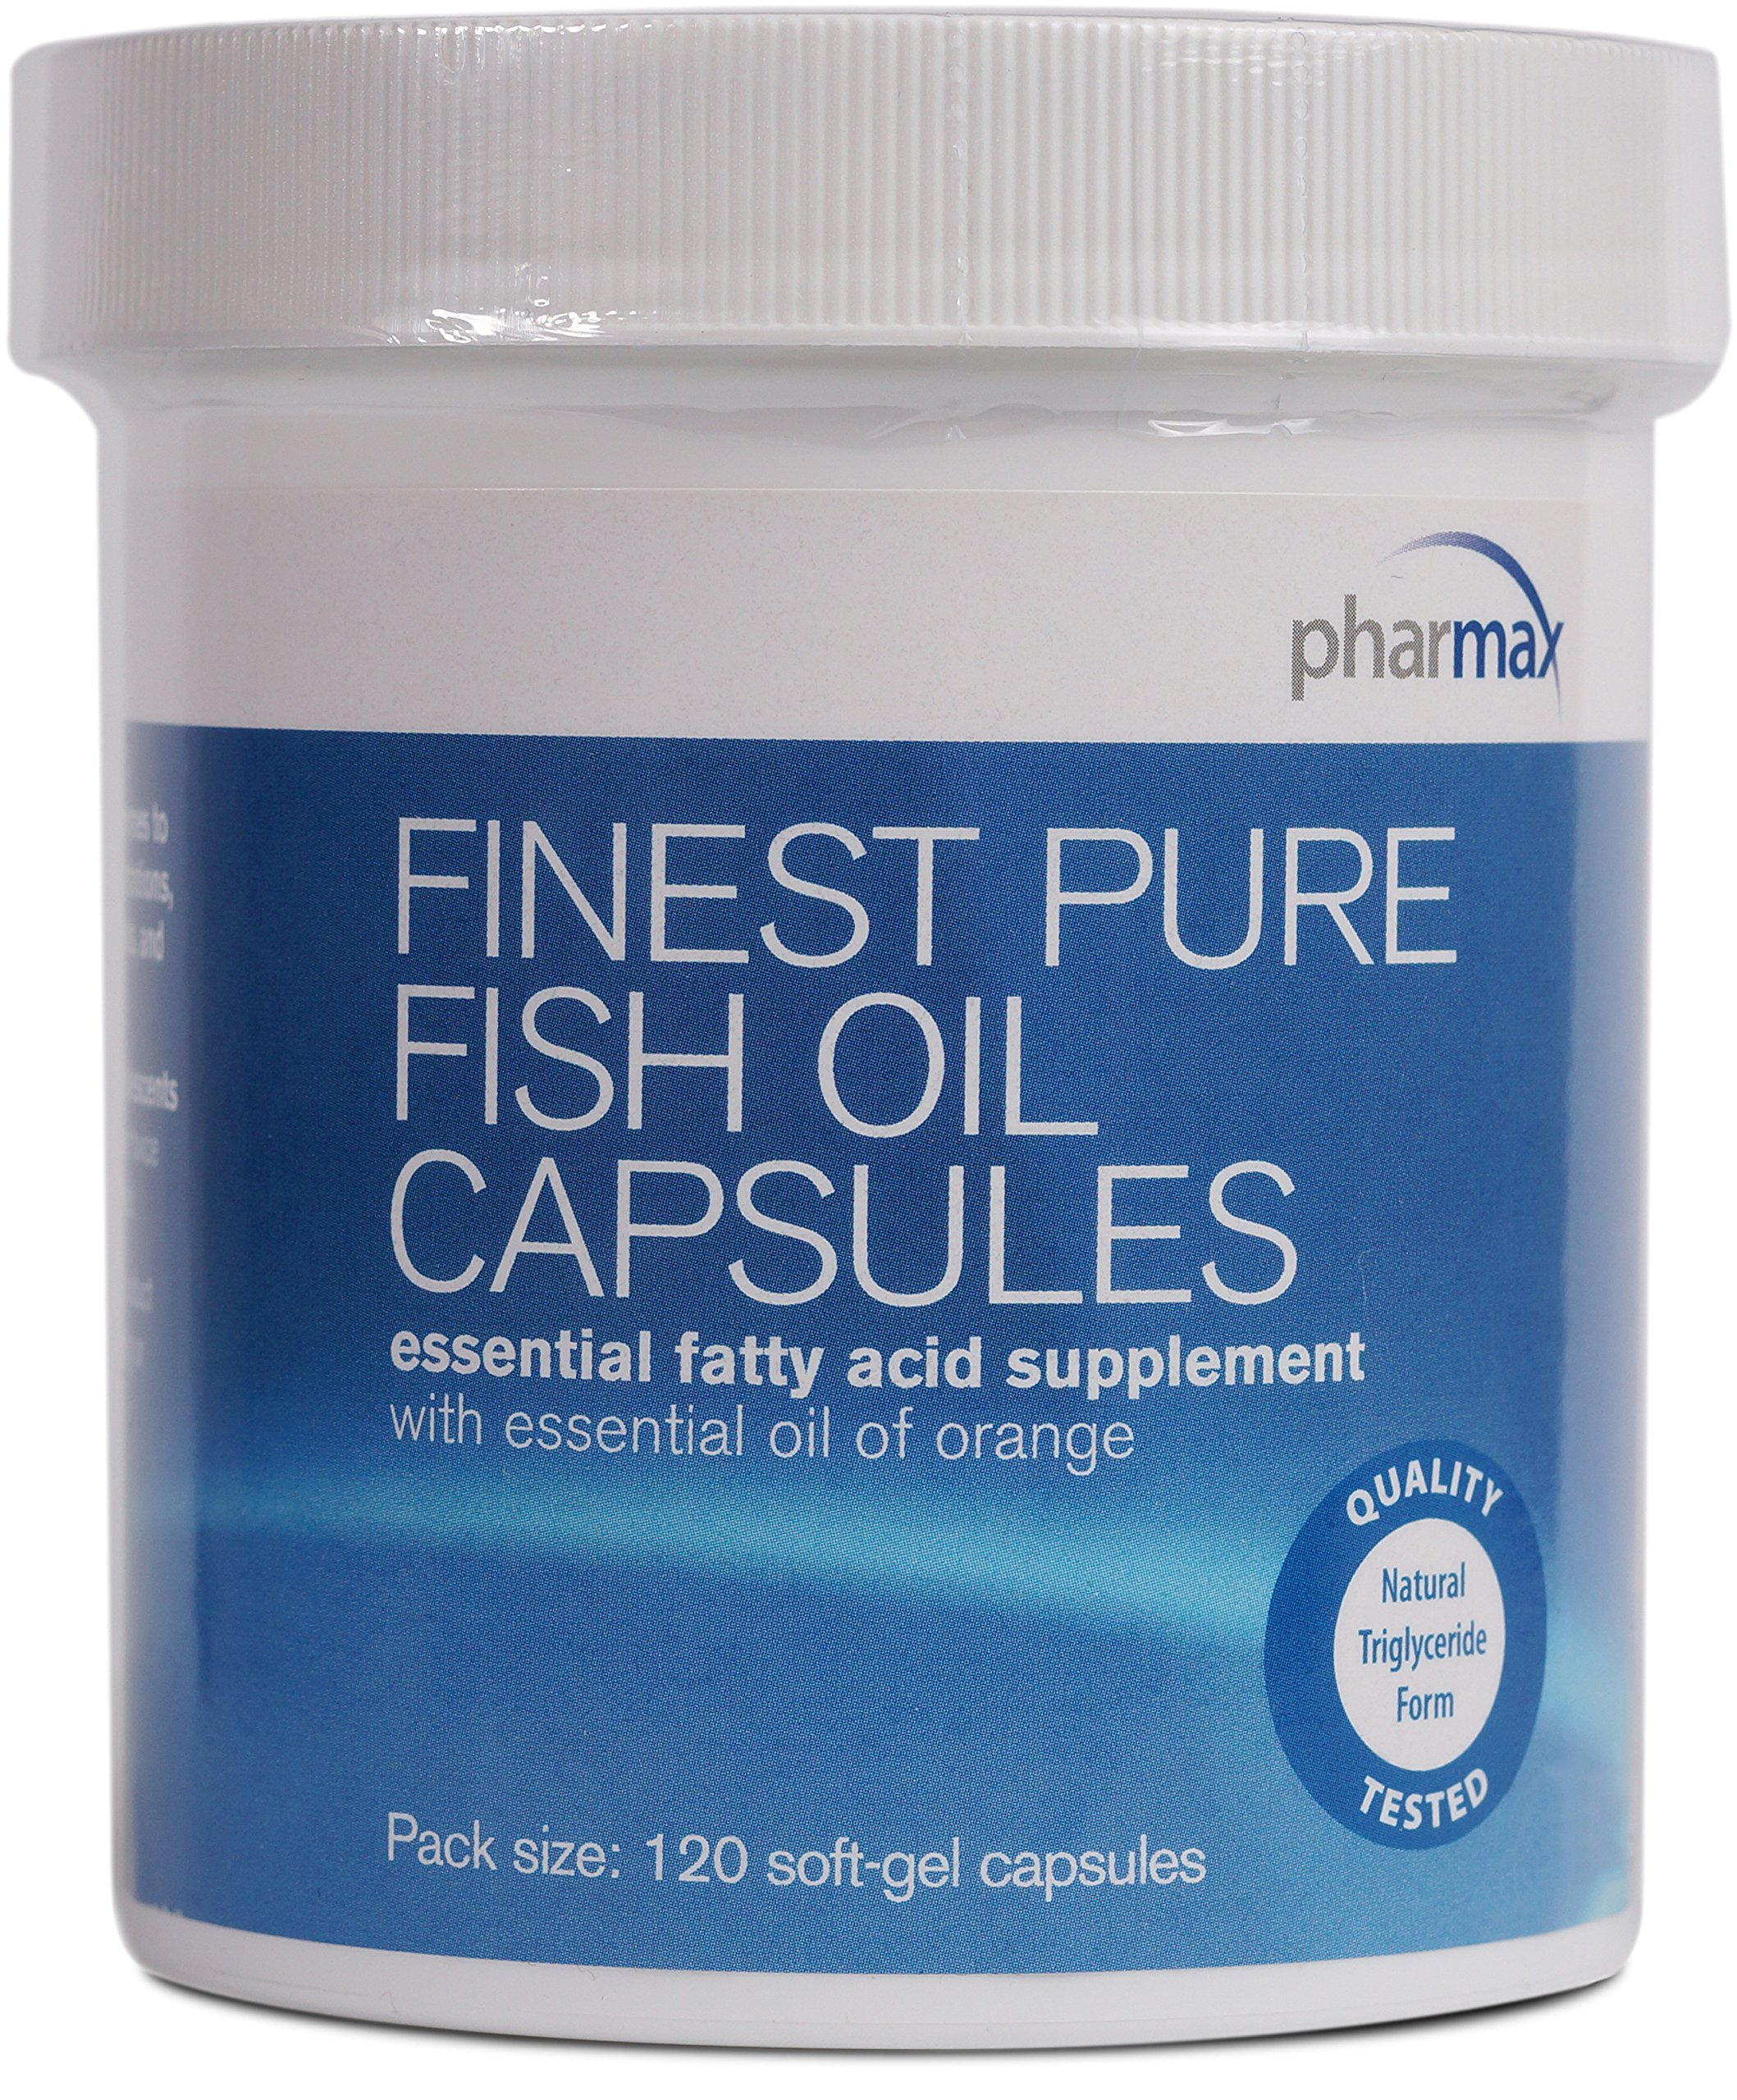 Pharmax - Finest Pure Fish Oil Capsules - Supports Cognitive Health and Brain Function* - 120 Softgel Capsules